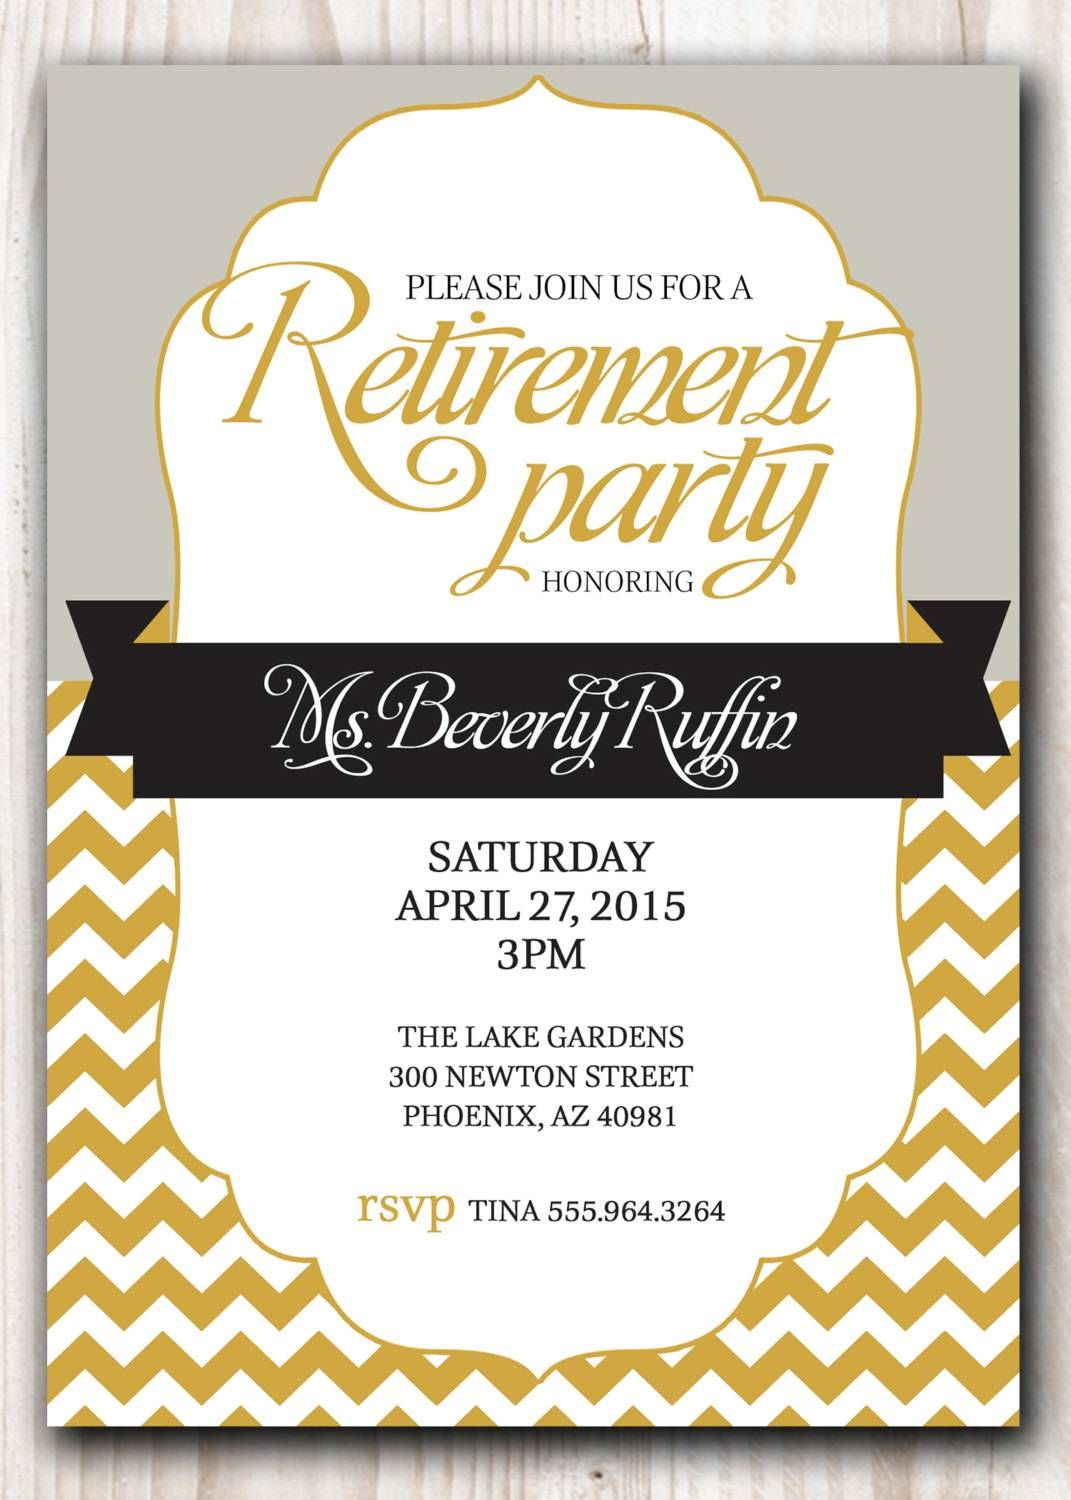 Retirement party invitation template microsoft retirment party retirement party invitation template microsoft stopboris Image collections